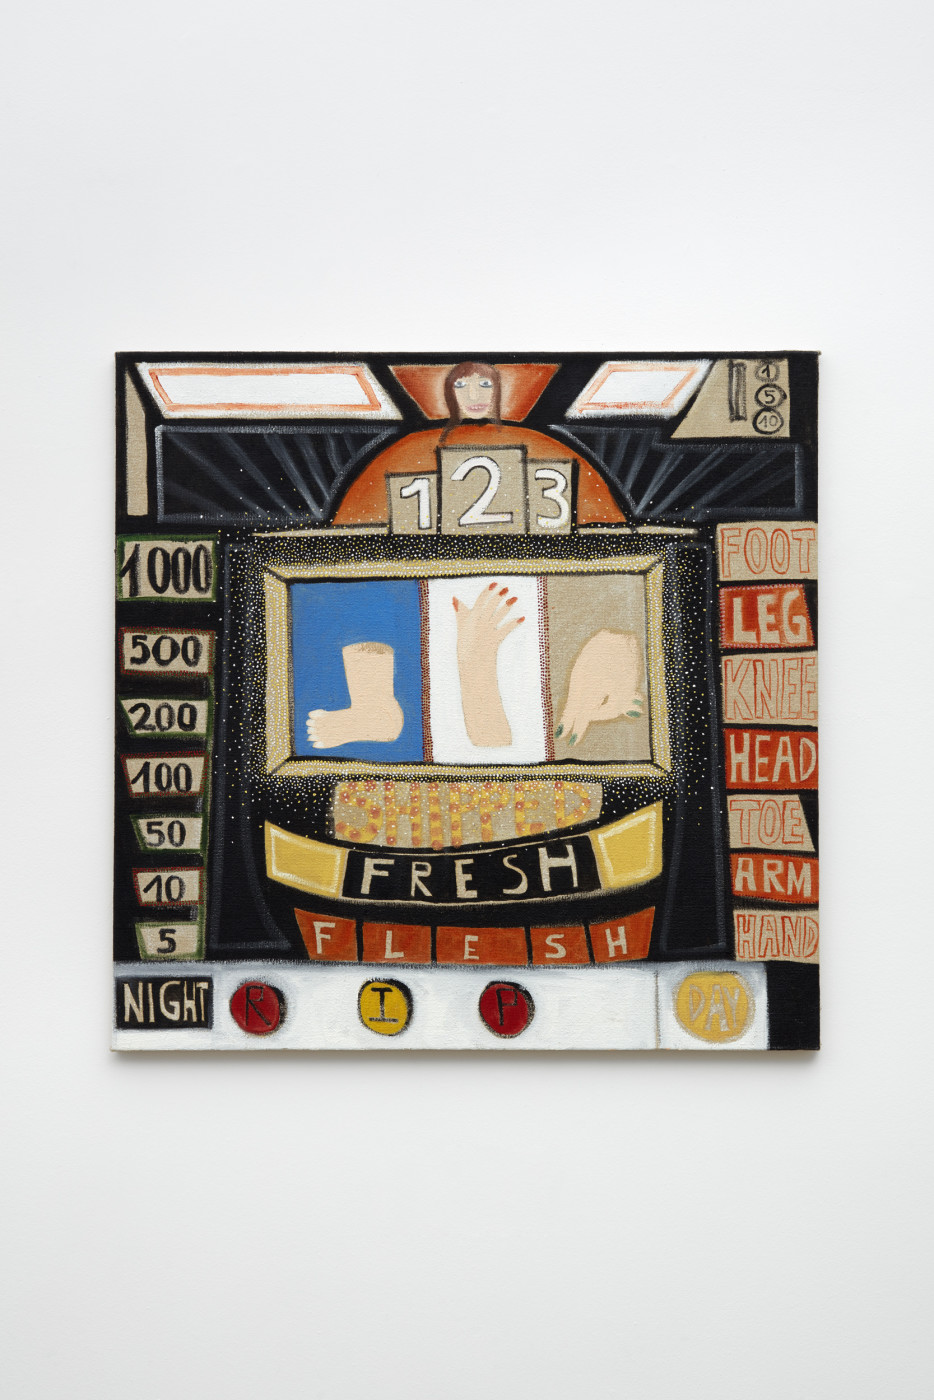 <style type=&#34;text/css&#34;></style><p><i>The Slotmachine</i>,&#160;2014&#160;</p><p>oil on hessian&#160;</p><p>81 x 81.2 x 2.5 cm /31 7/8 x 32 x 1 in.</p>